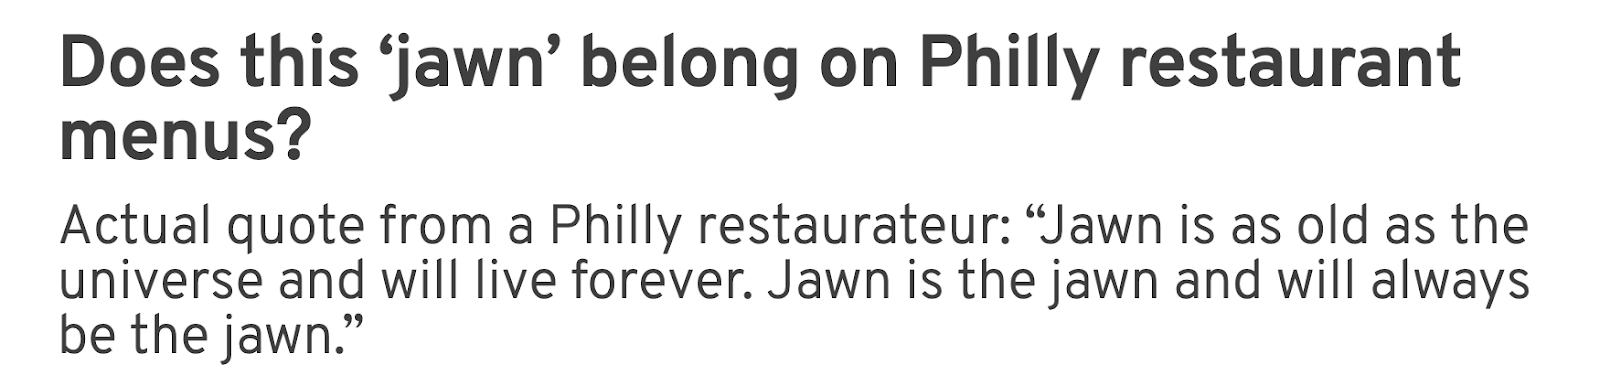 Does this 'jawn' belong on Philly restaurant menus?